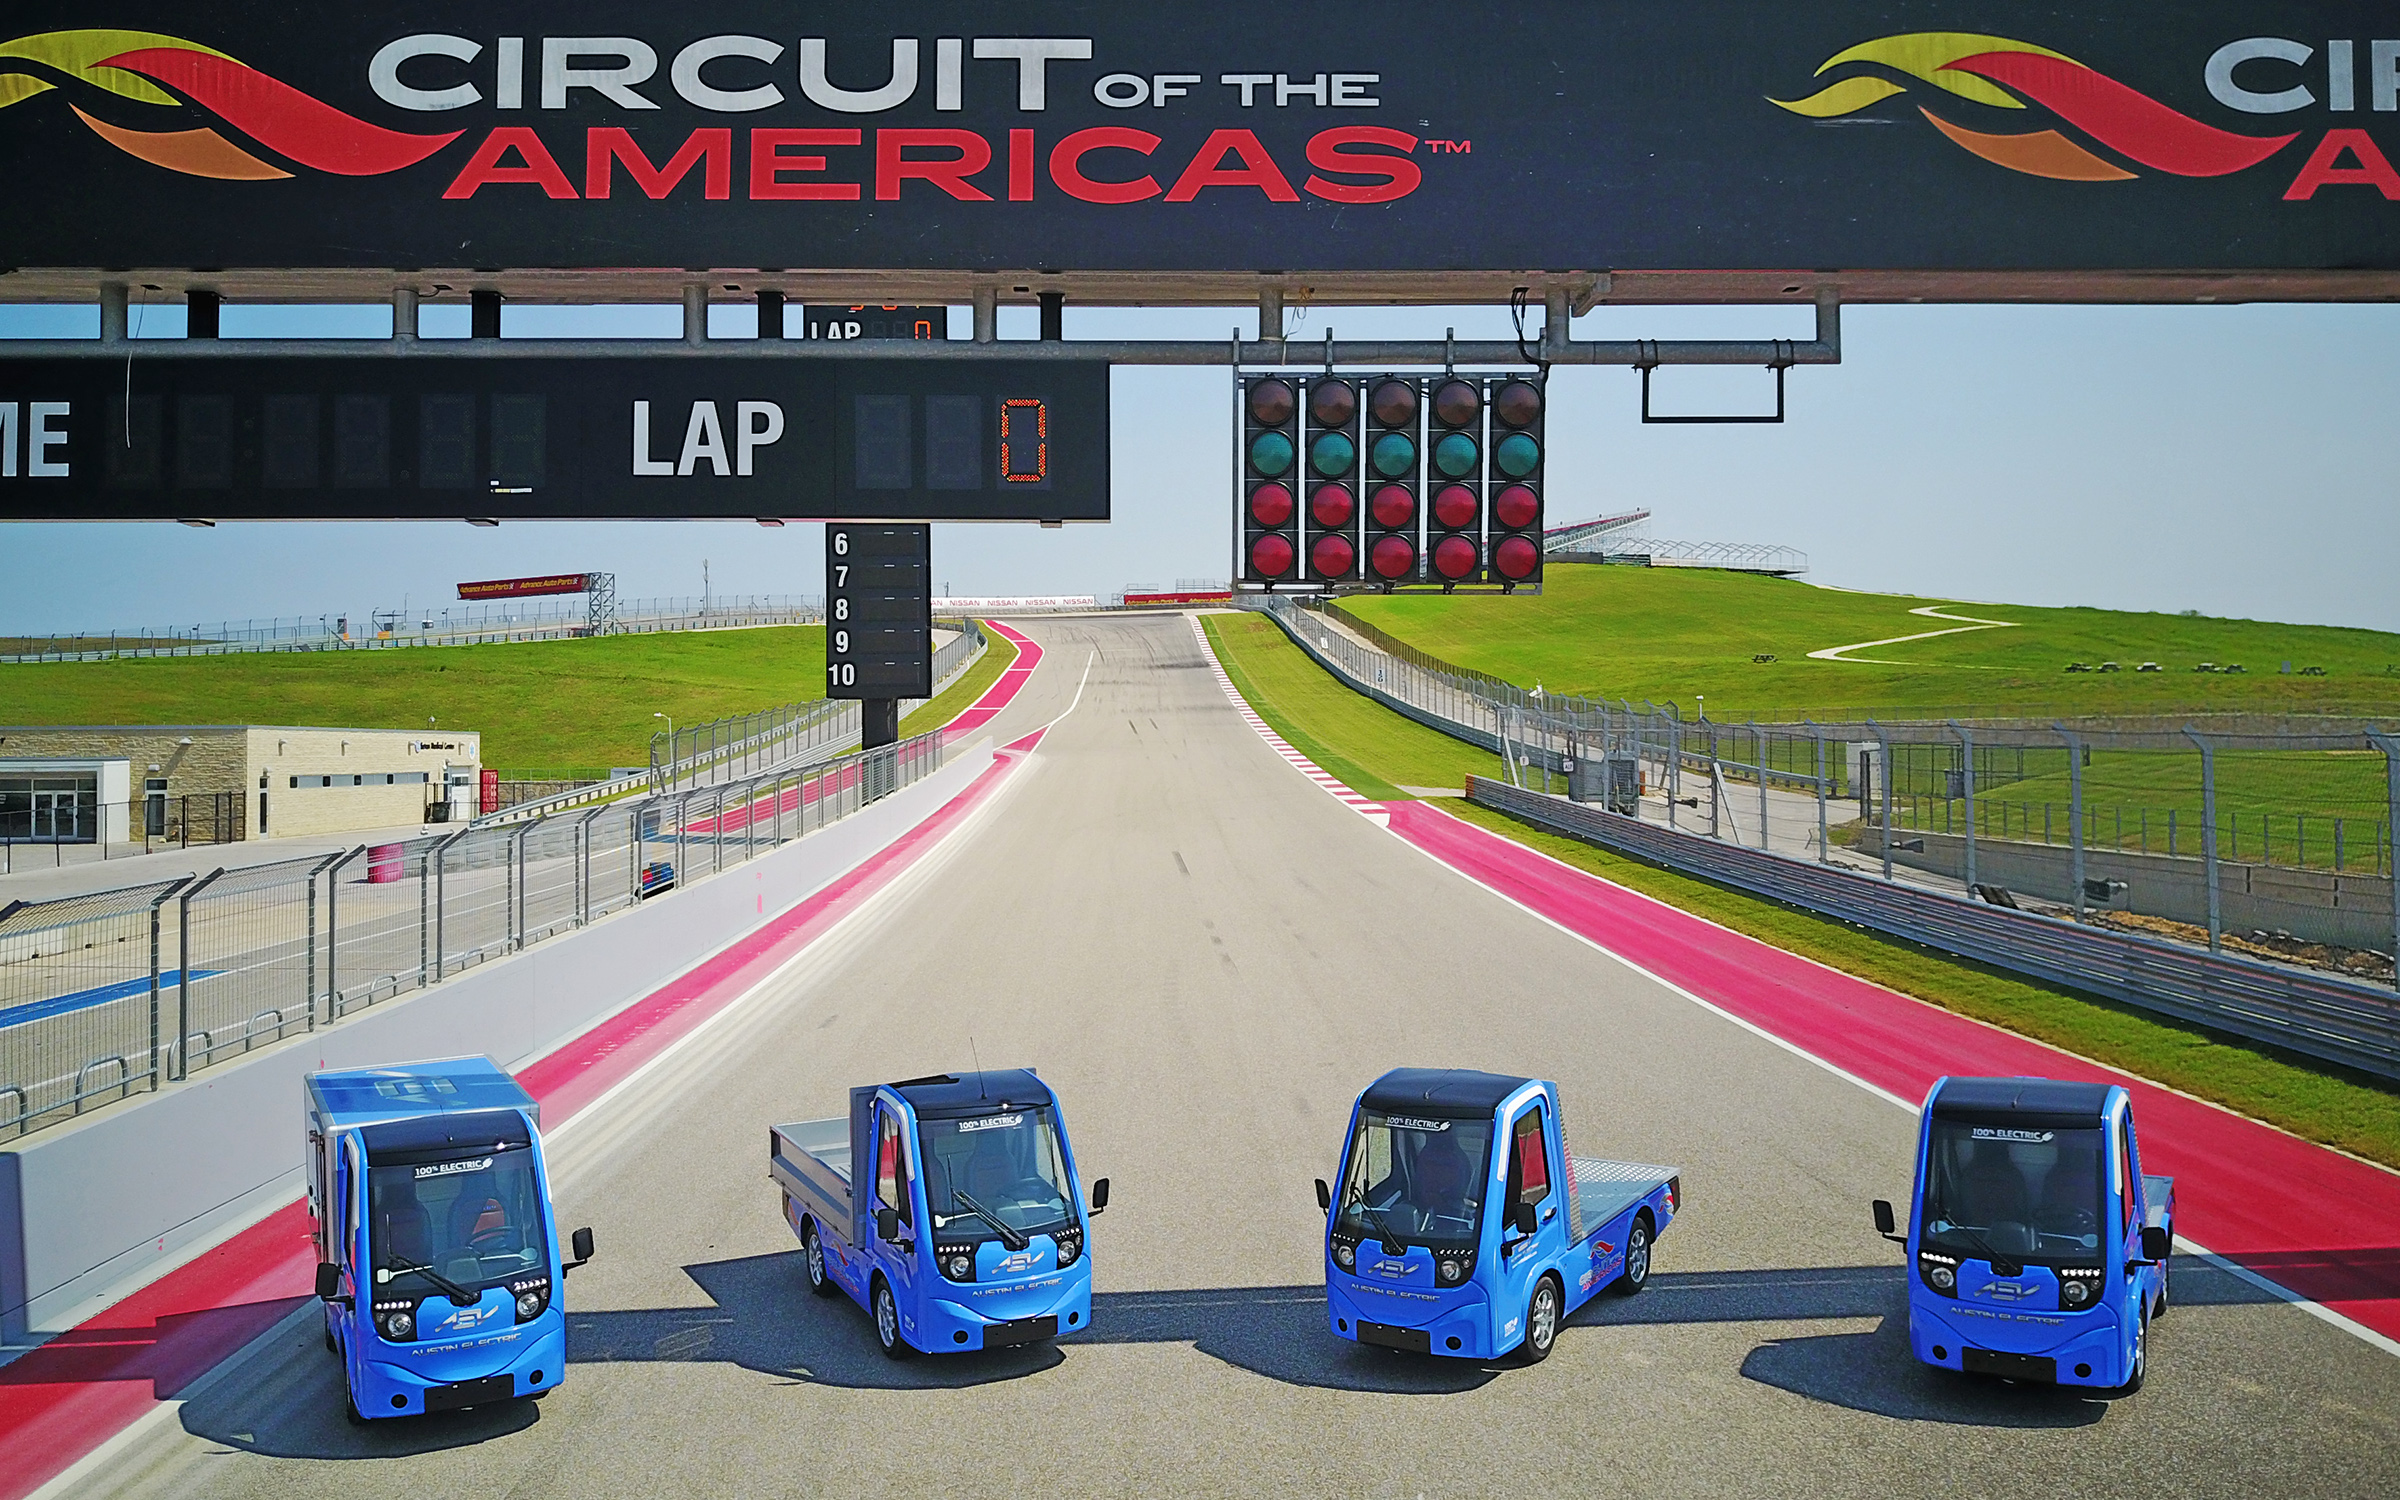 Austin Electric Vehicles Forms Strategic Partnership With Circuit Of Game At The Americas